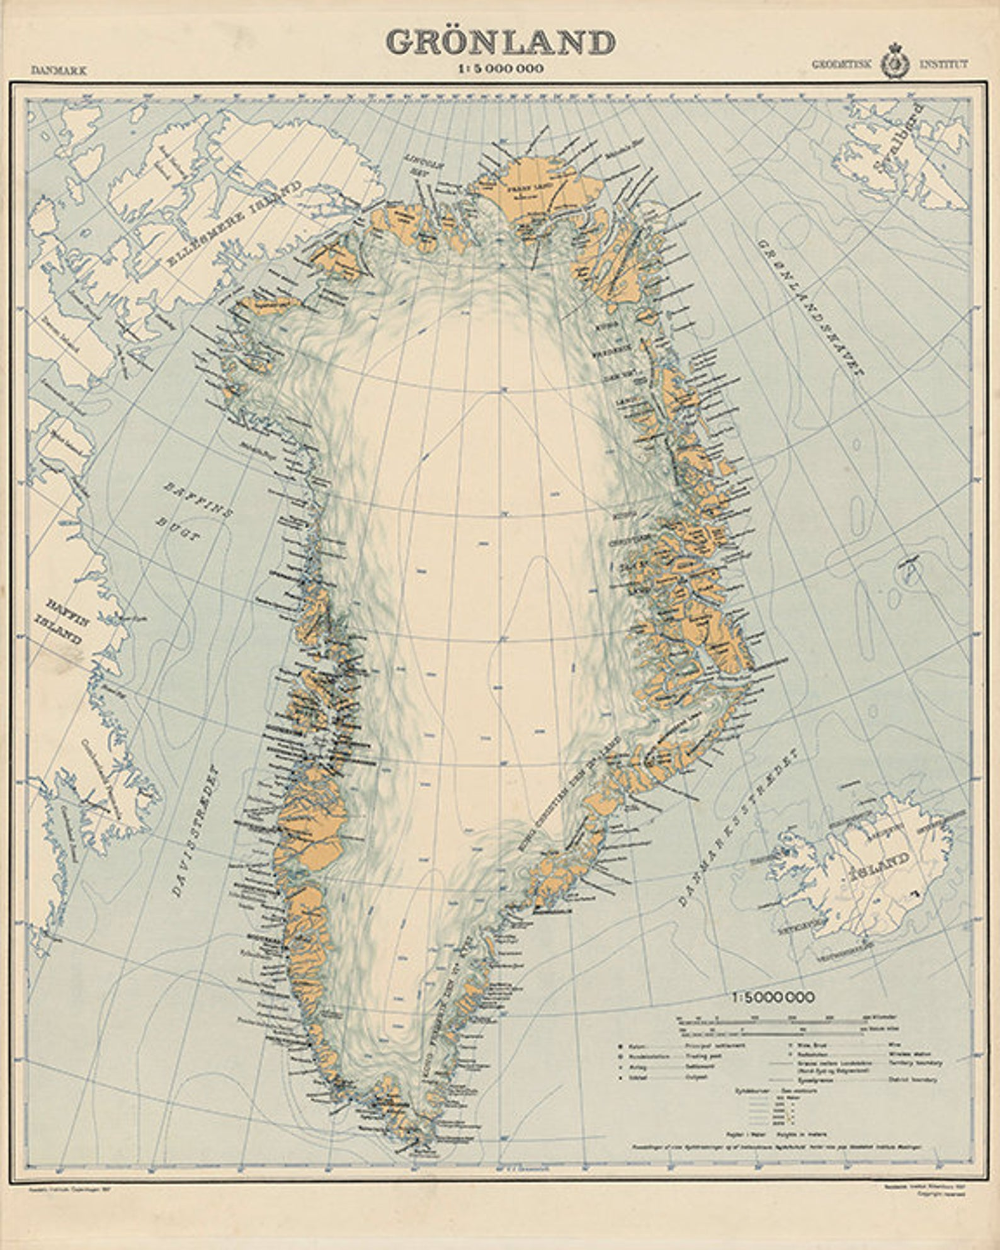 Map of Greenland, Grønland. 1937 Restoration Hardware Home Deco Style Oil Painting Reprint.